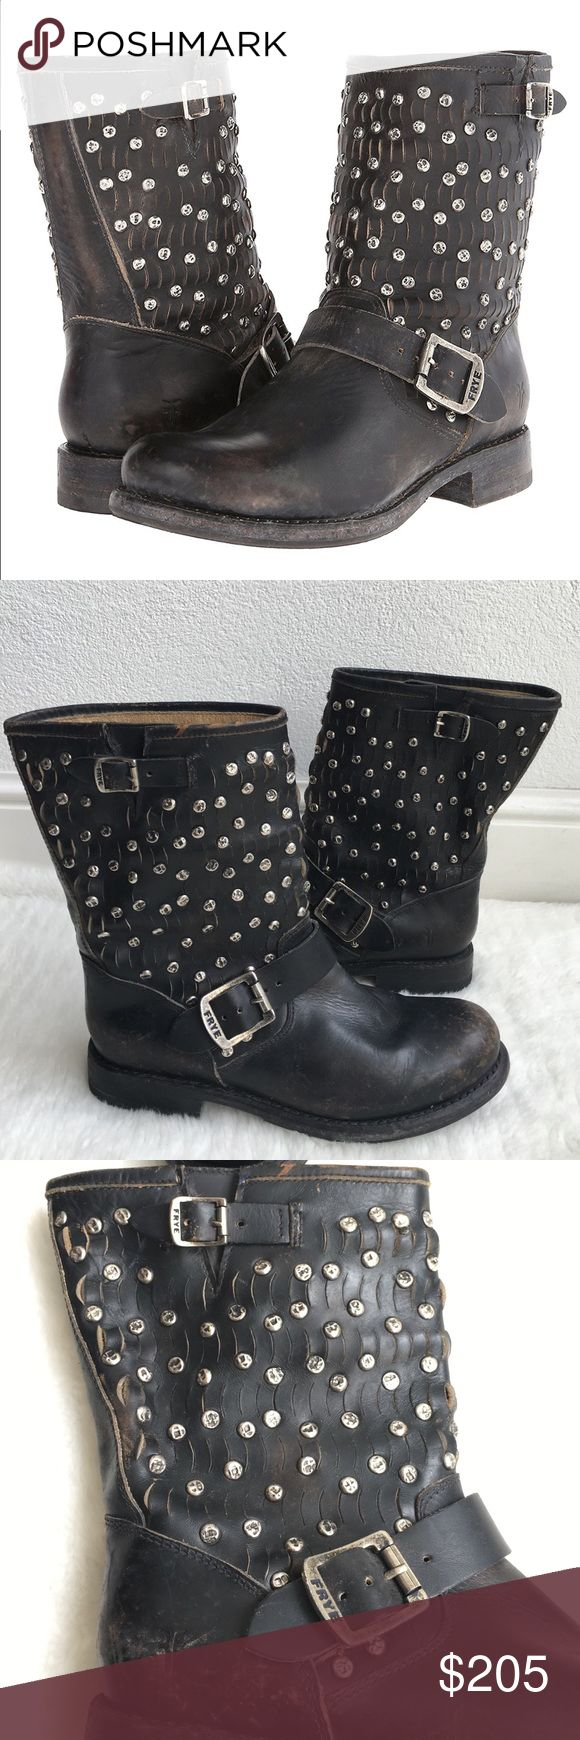 New Frye Jenna Cut Stud Short Ankle Boots size 7 New Frye Jenna Cut Stud Short Ankle Boots size 7. Please look at pictures for better reference. Happy shopping! Frye Shoes Ankle Boots & Booties